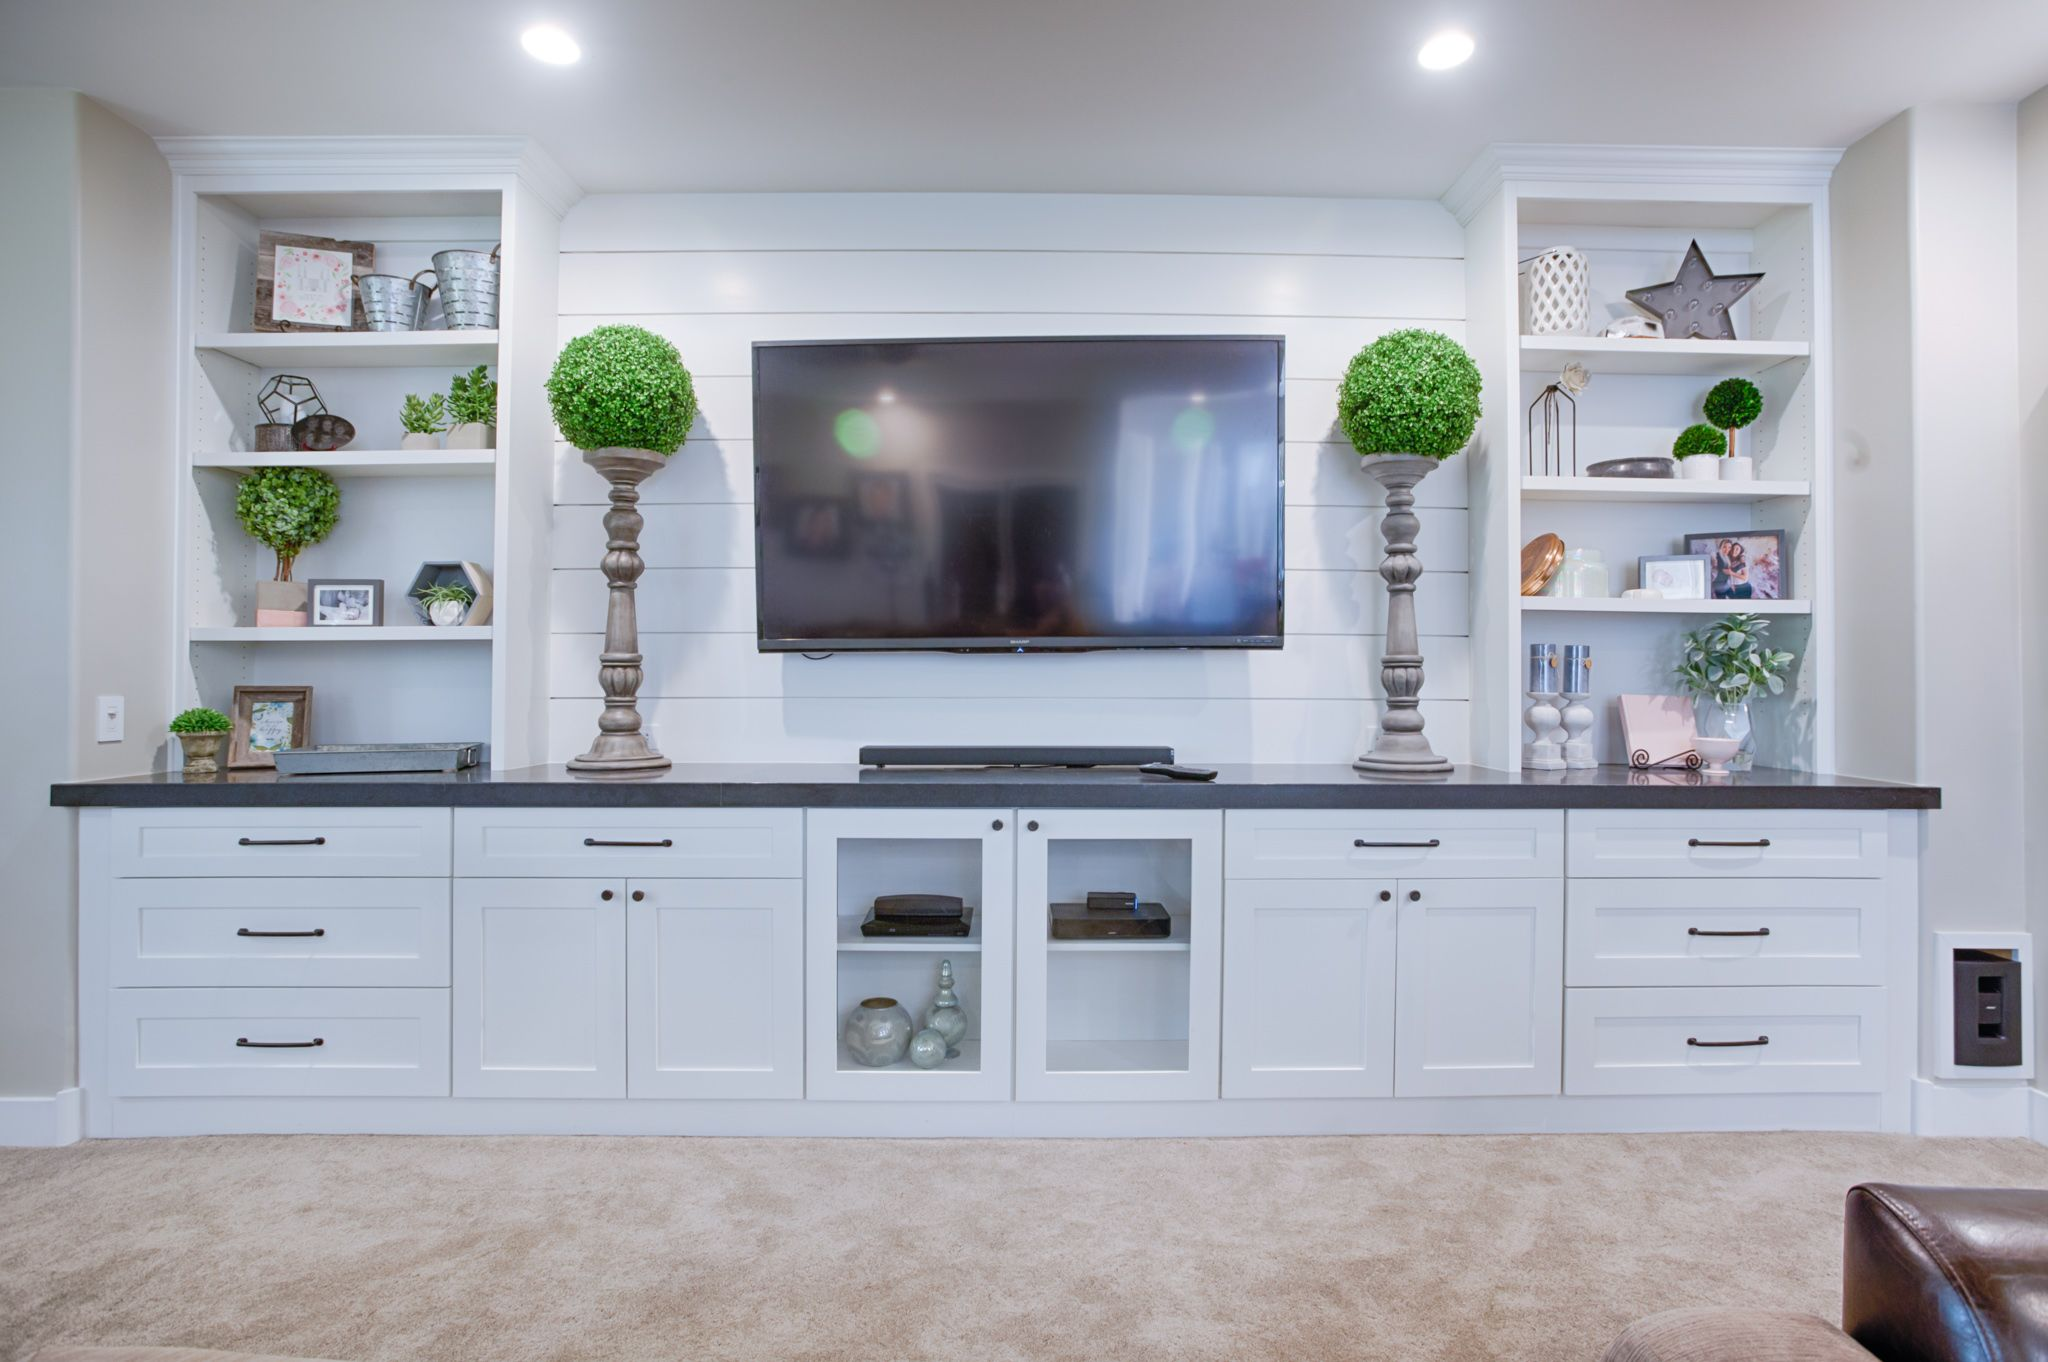 These Sundance Frost Shaker Style Cabinets Are Shown In This Beautiful Enterta In 2020 Living Room Entertainment Center Living Room Entertainment Living Room Built Ins